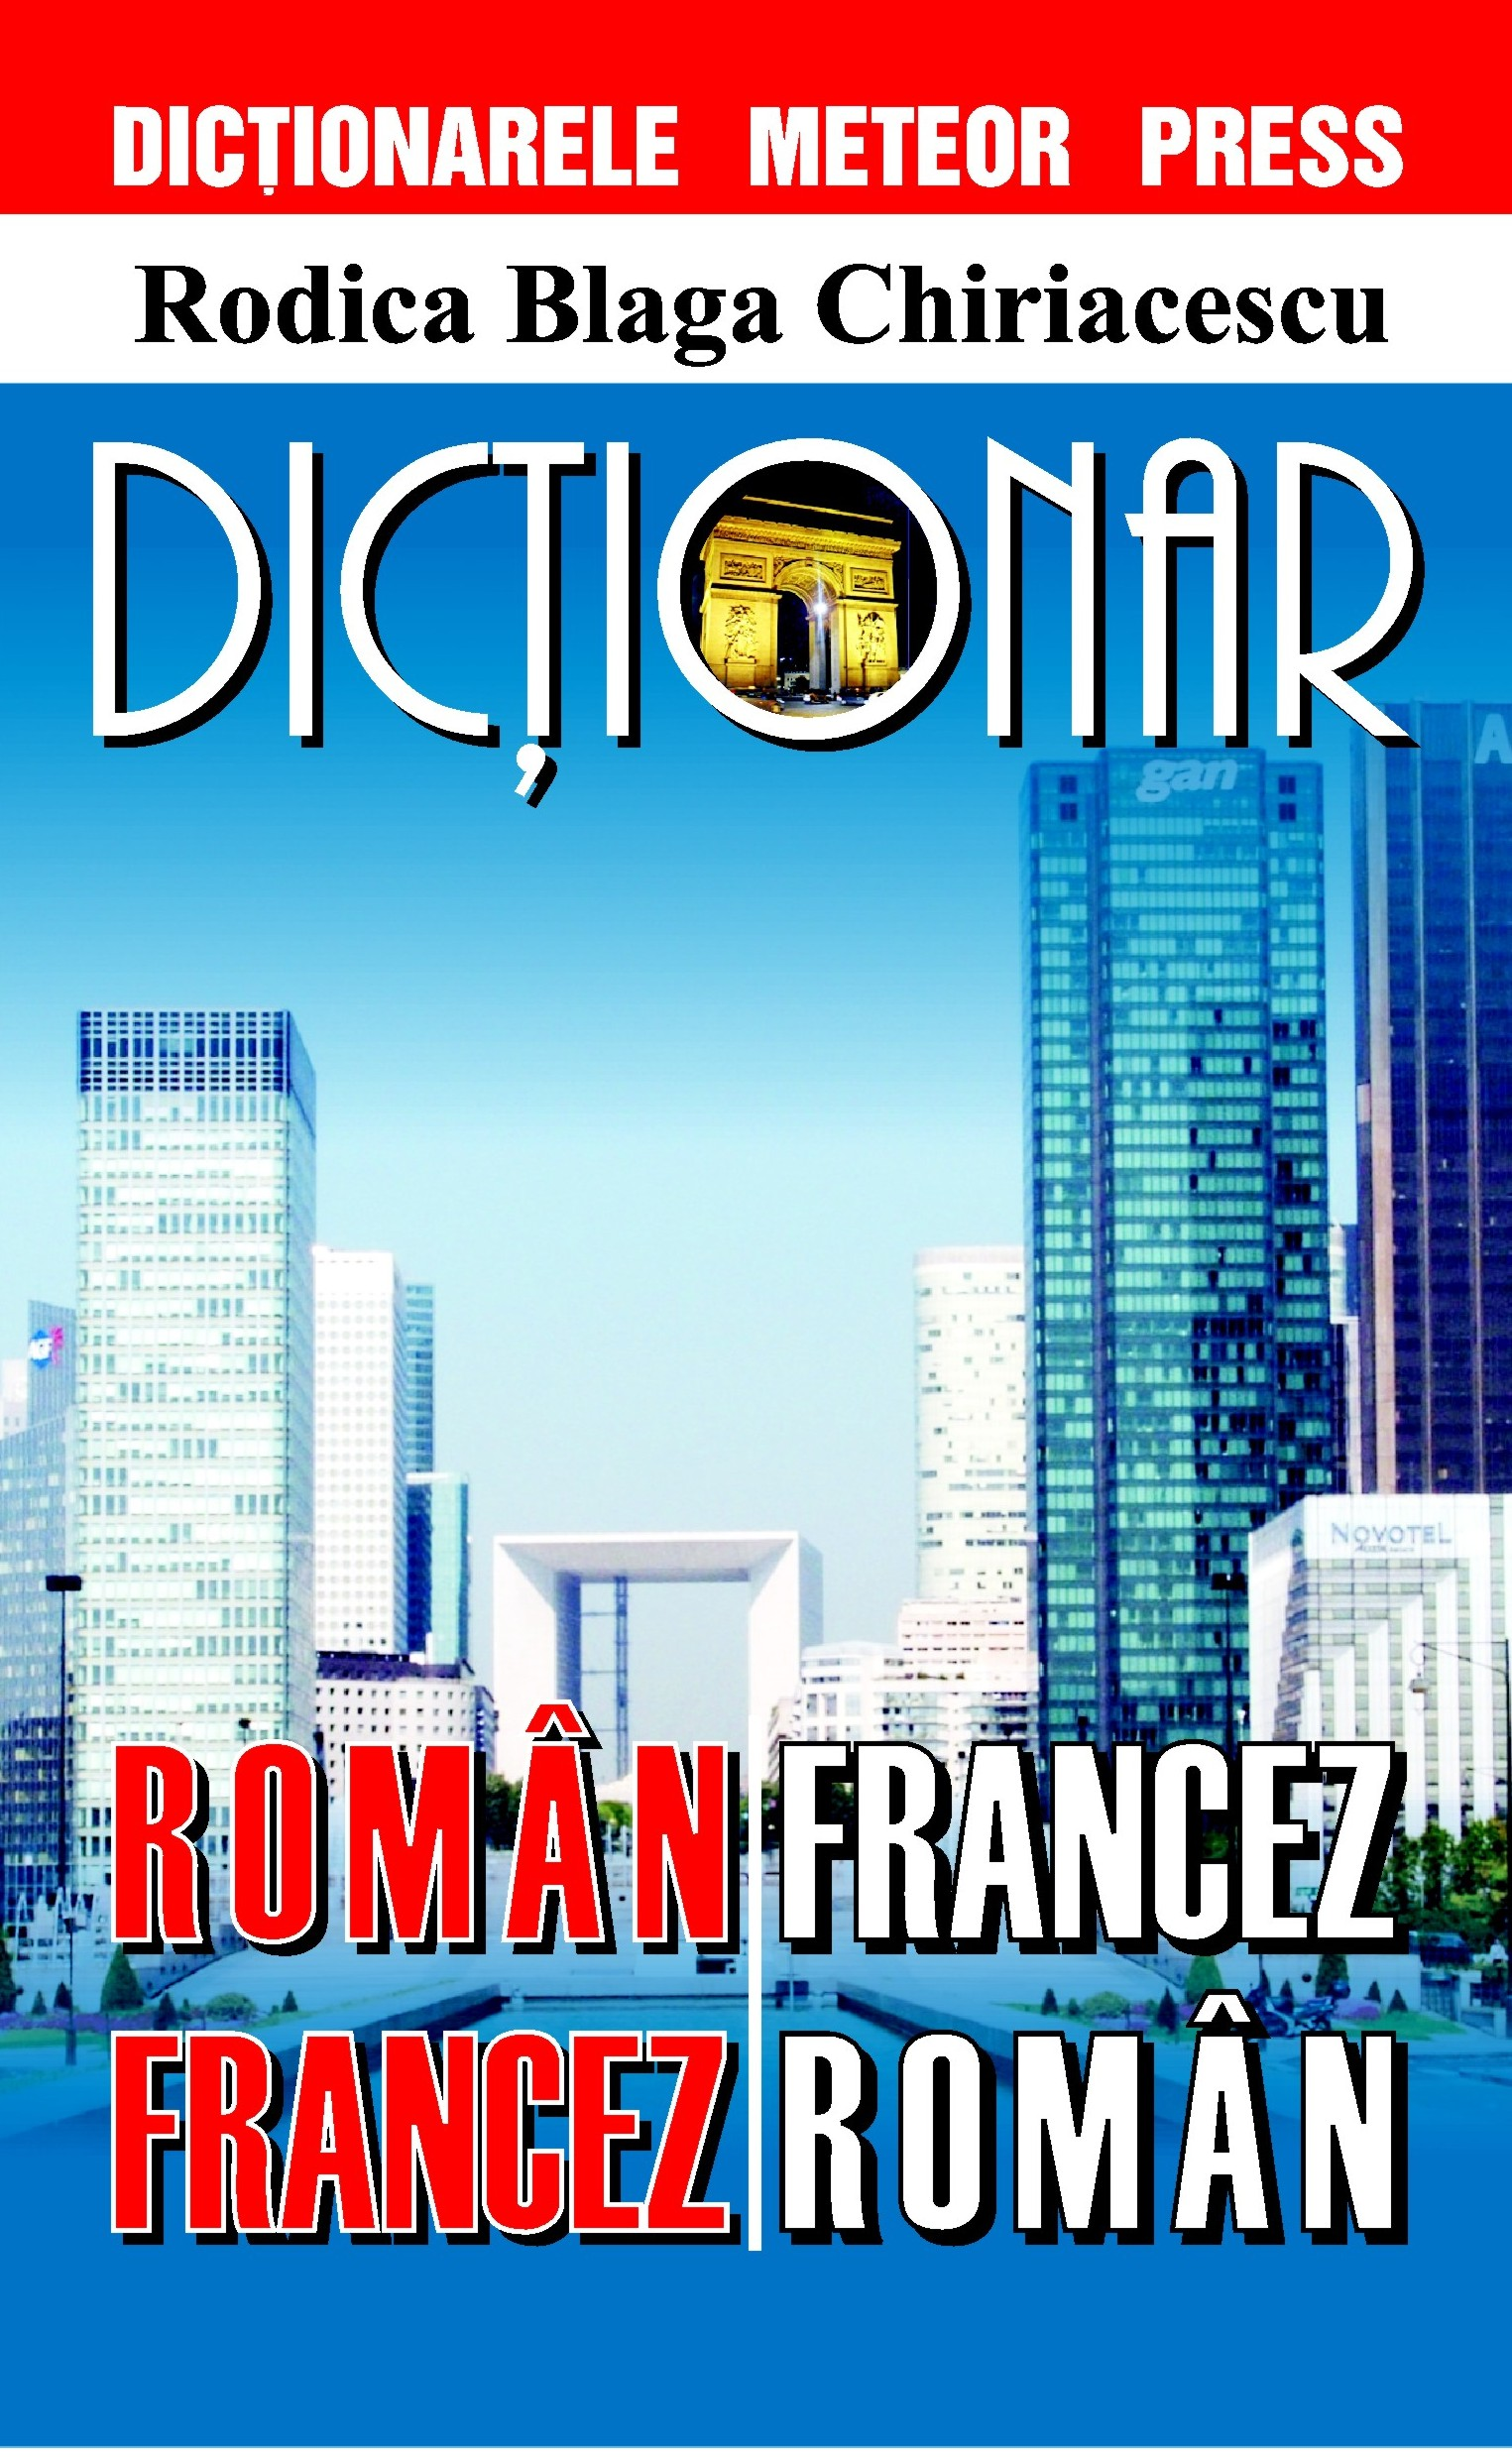 Dictionar roman-francez, francez-roman